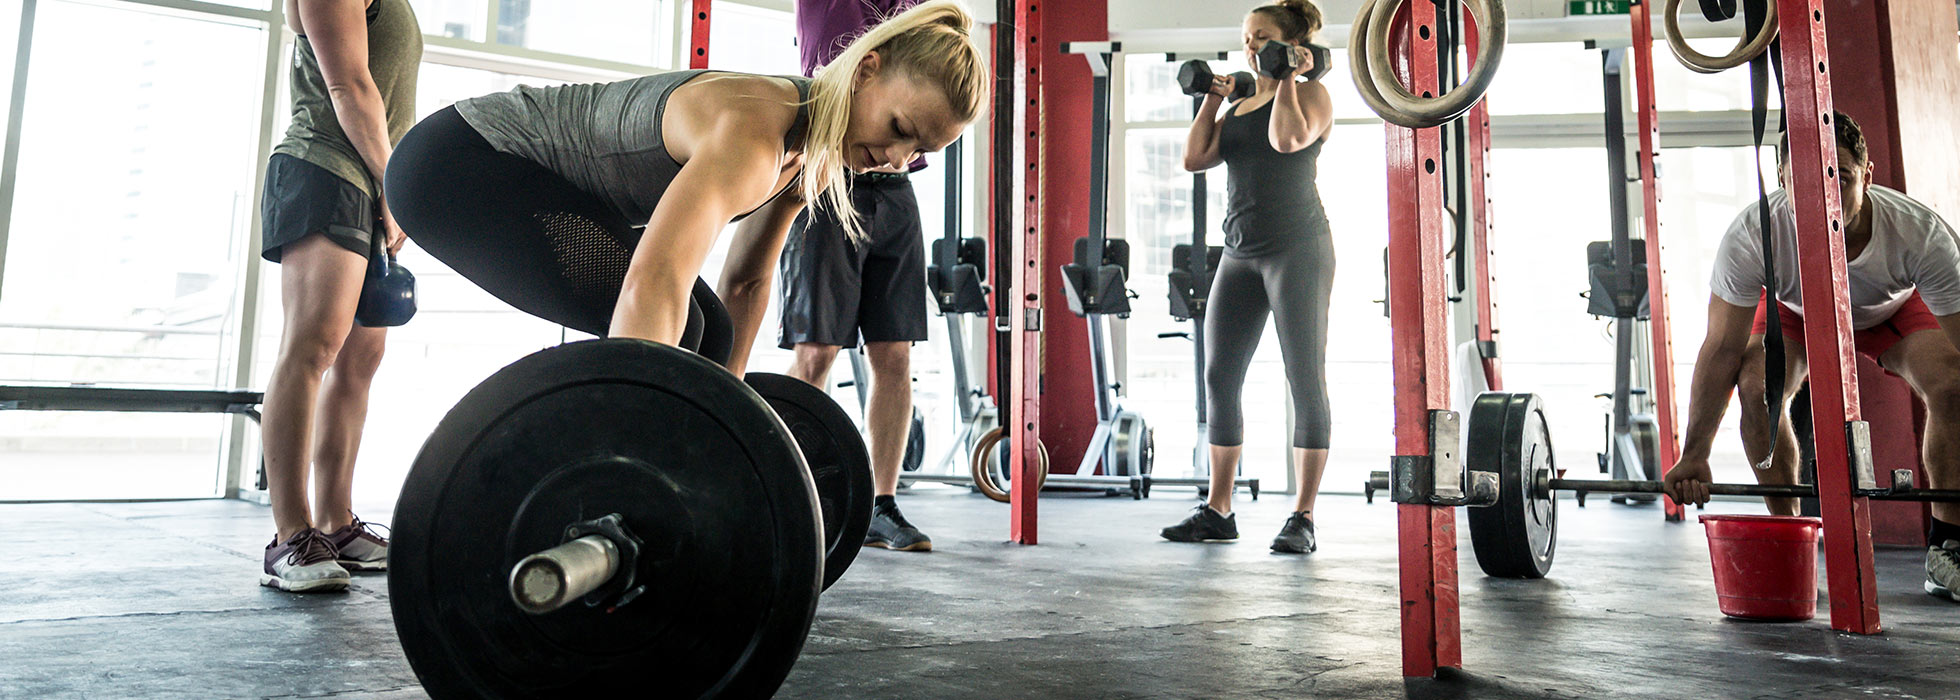 CrossFit Gyms Near Me In Dartmouth